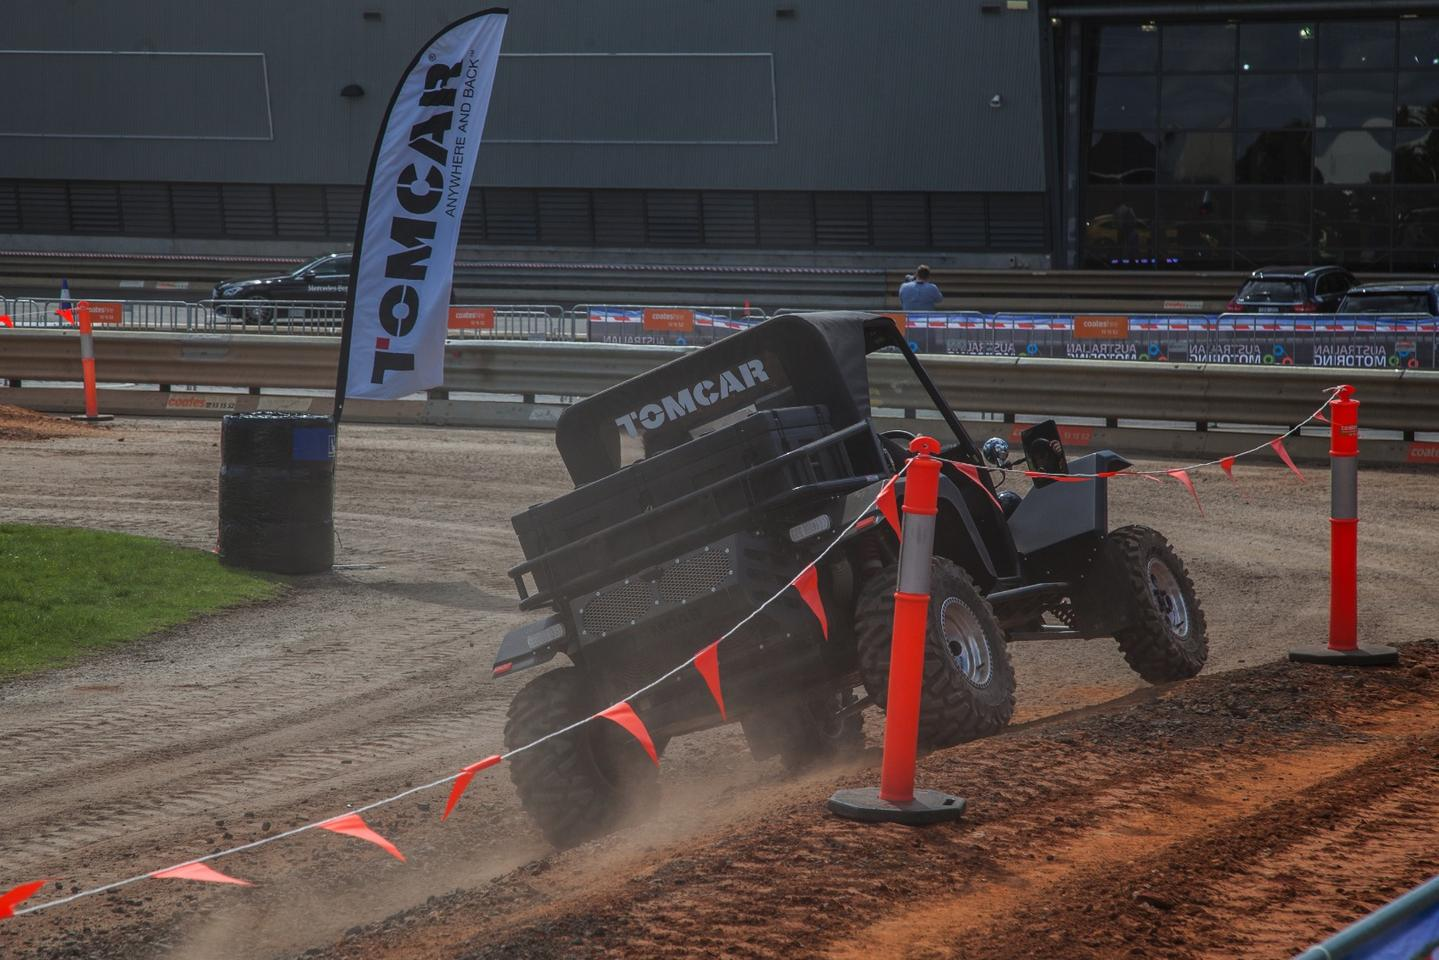 The Tomcar in action at the Australian Motoring Festival (Photo: Nick Lavars/Gizmag.com)